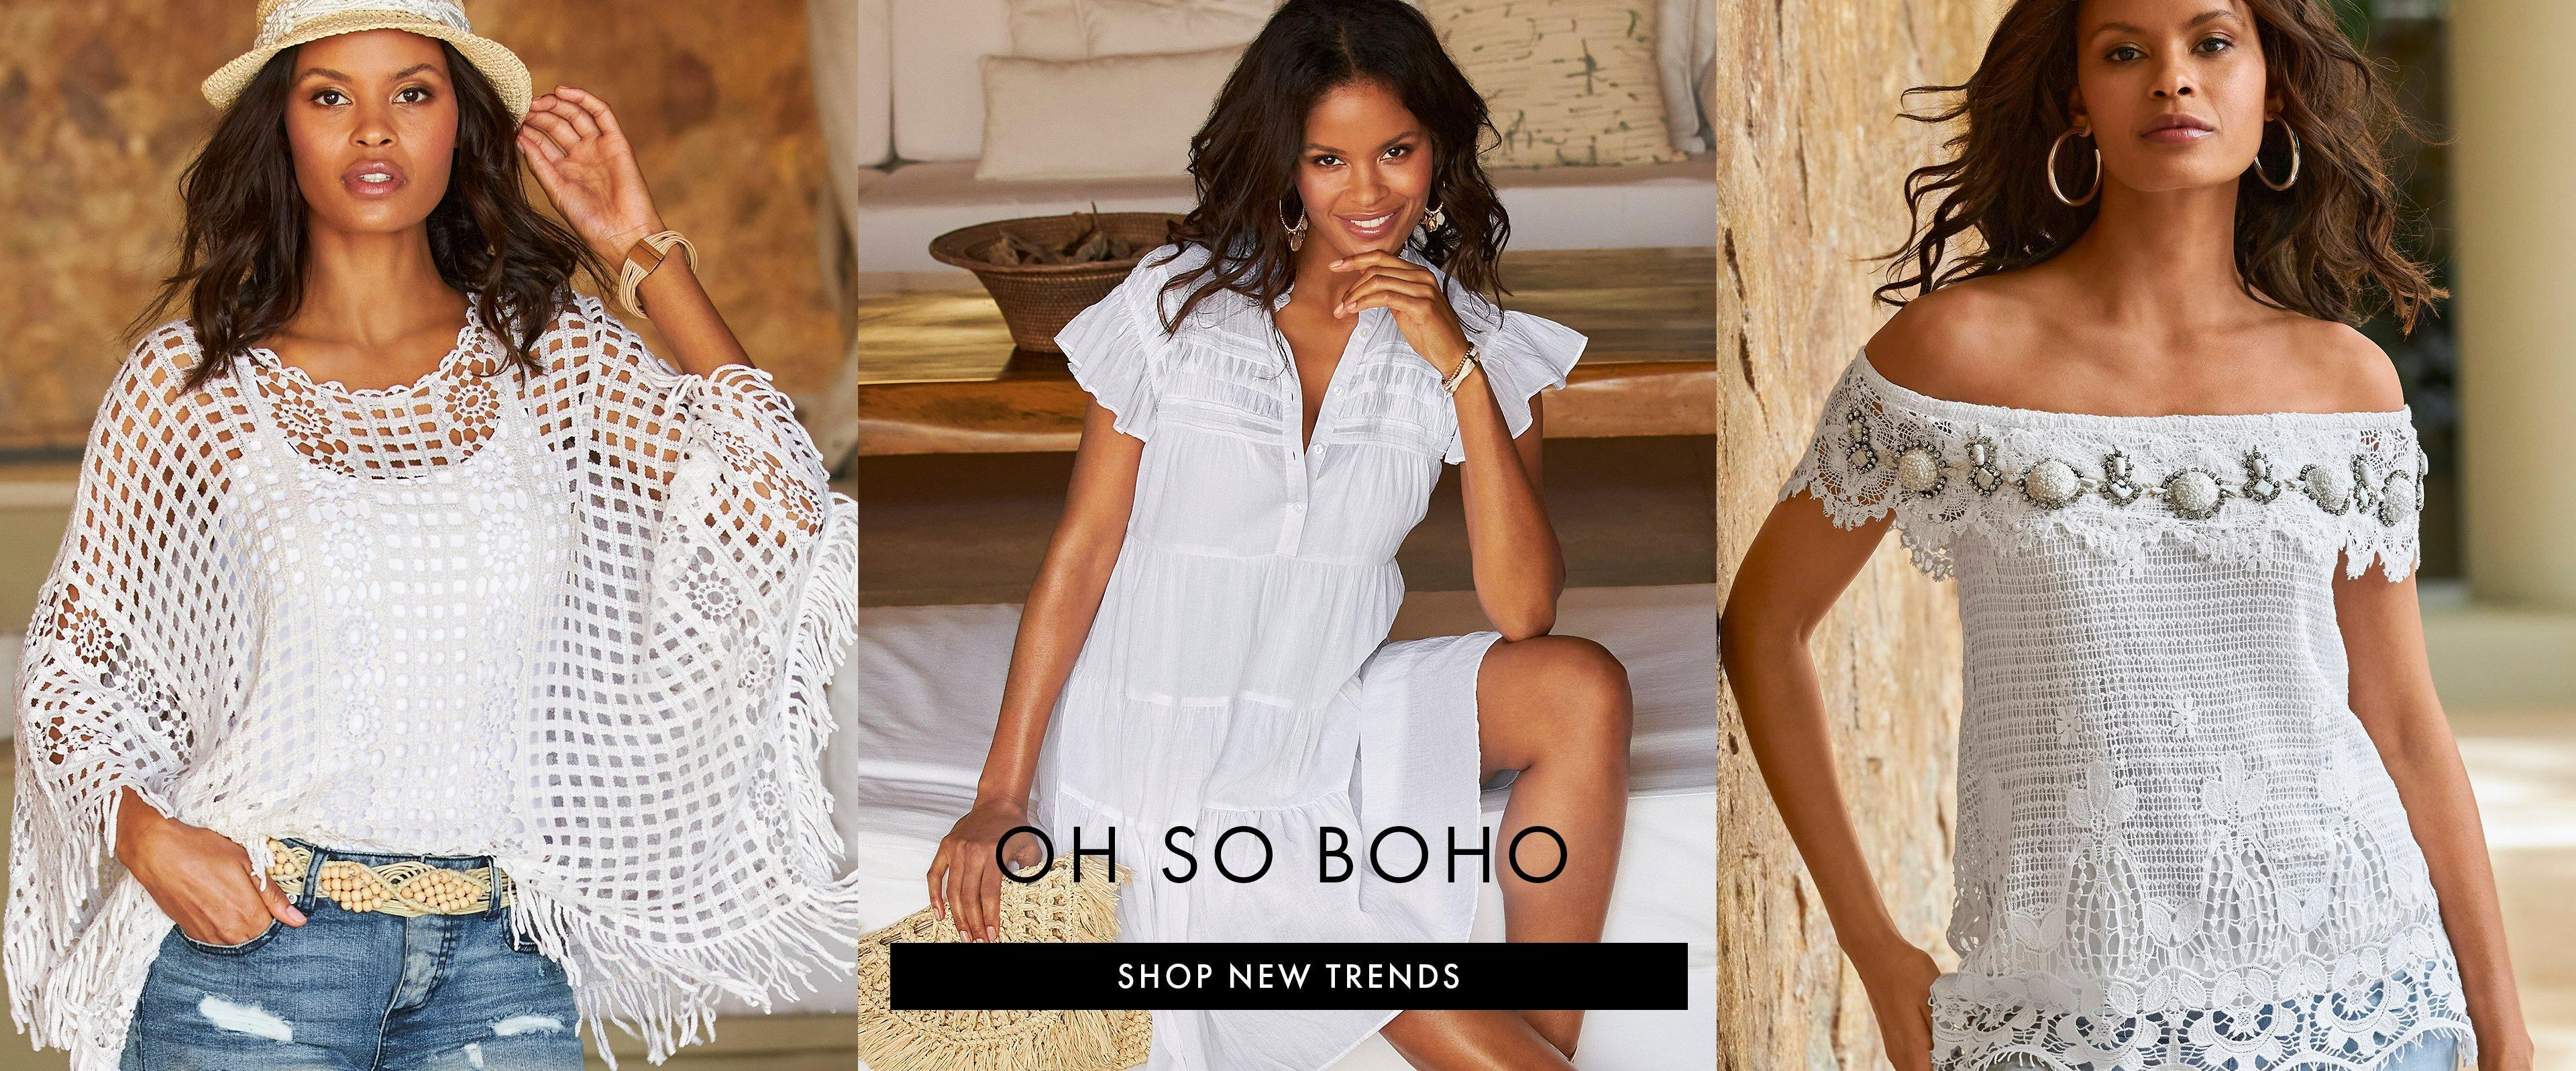 left model wearing a white crochet pullover poncho, white tank top, beige belt, ripped denim shorts, and a straw hat. middle model wearing a white short sleeve tiered shift dress. right model wearing an off-the-shoulder lace and embellished top and gold hoop earrings.